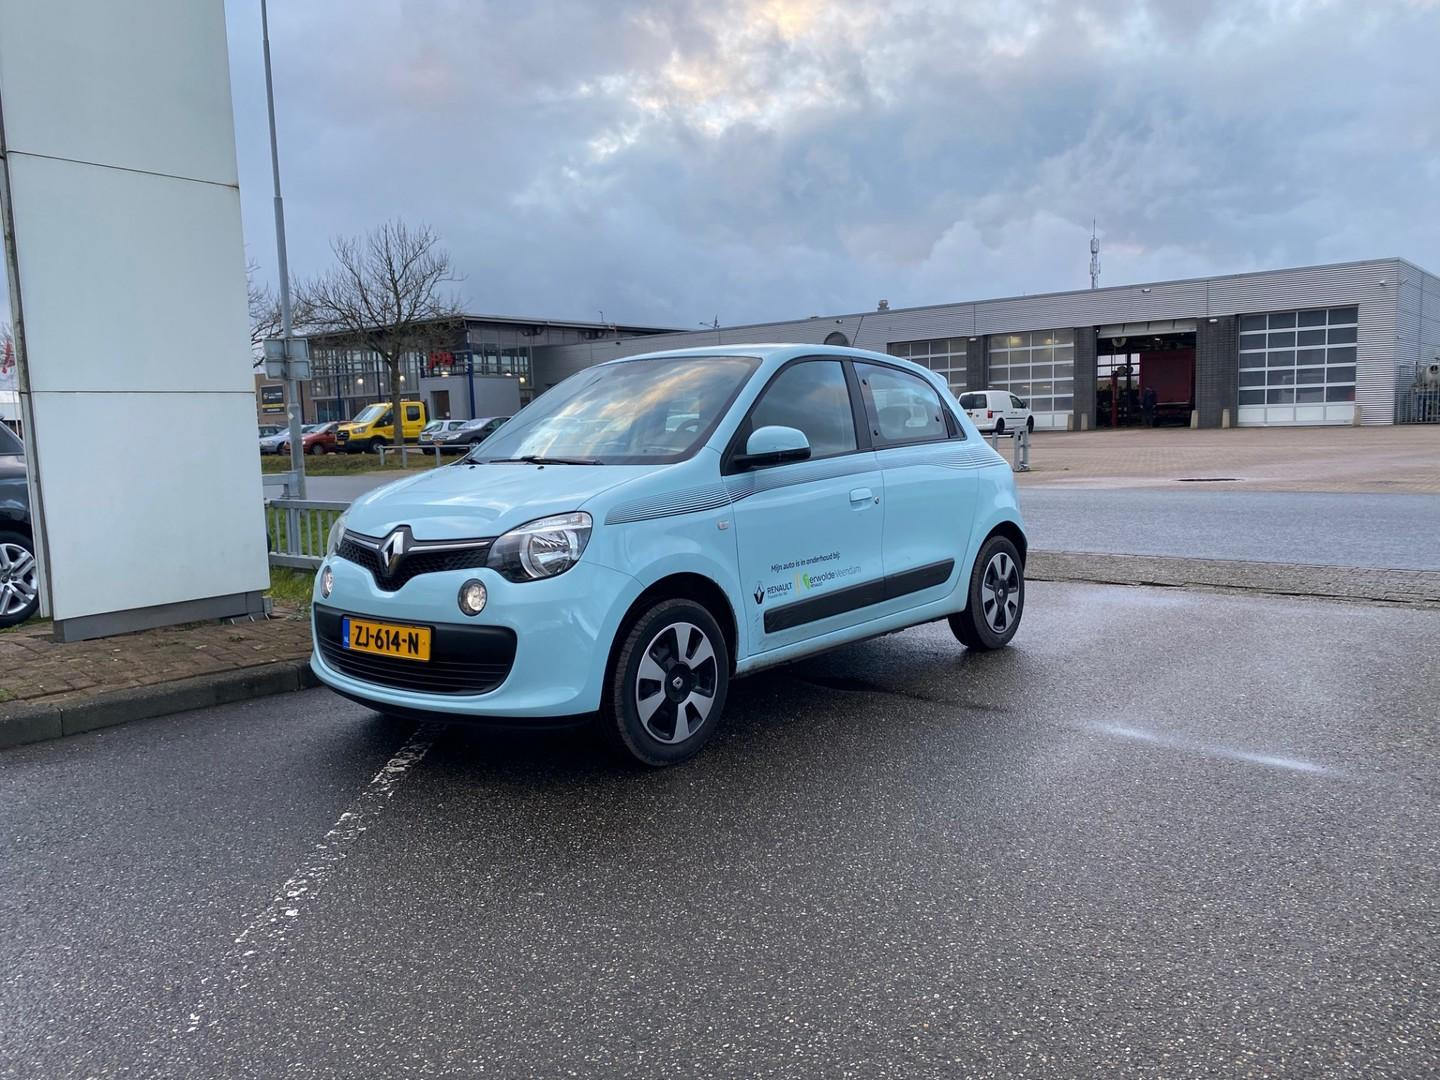 Renault Twingo 1.0 sce collection renault twingo 1.0 sce collection